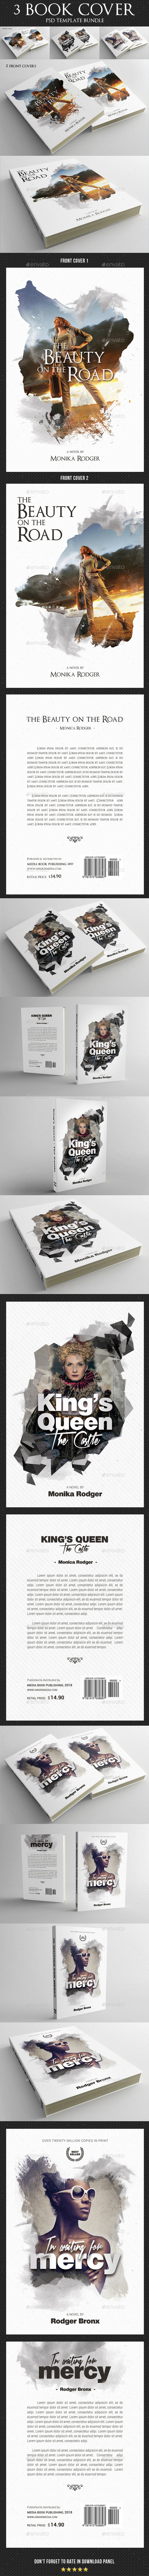 3 in 1 Book Cover Template Bundle 11 - Miscellaneous Print Templates